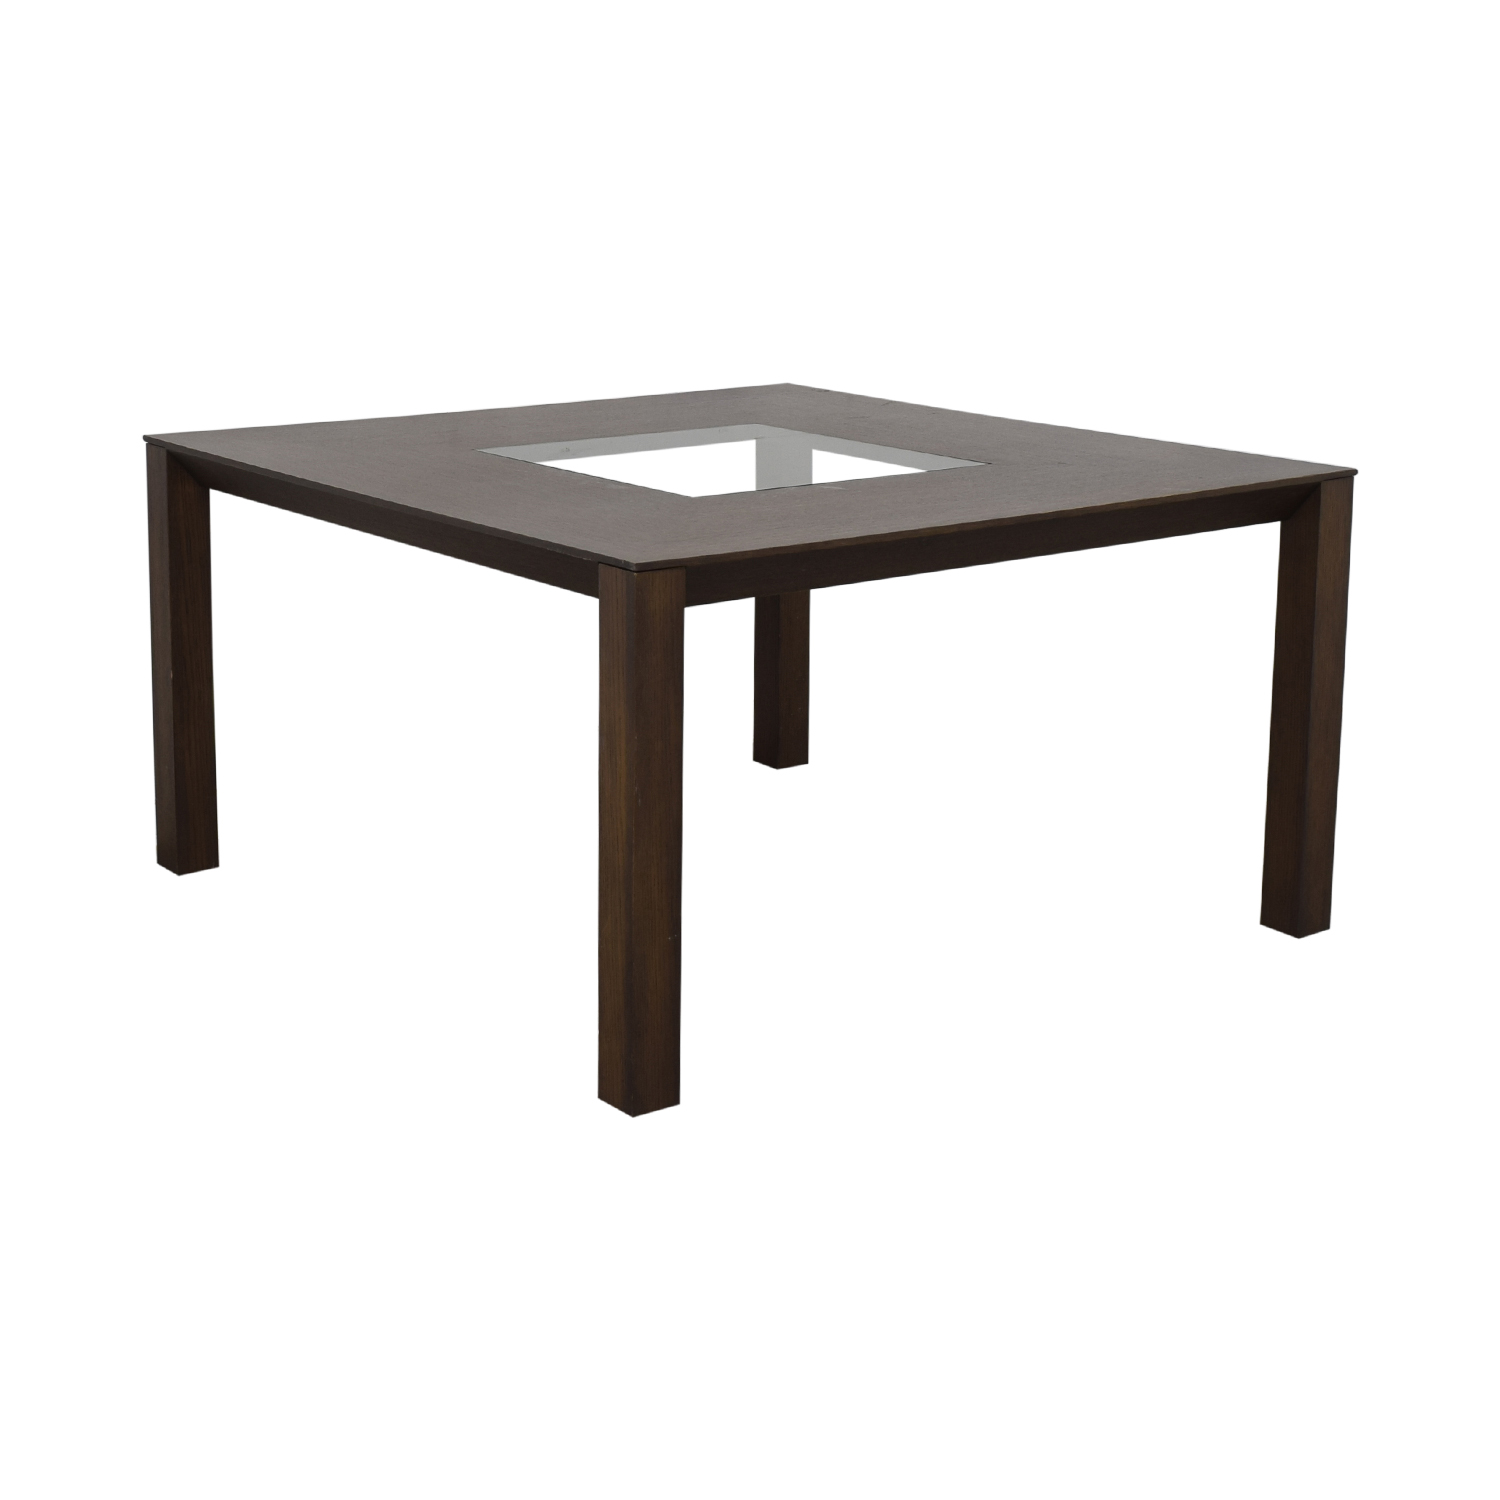 Planum Furniture Square Dining Table with Glass Inlay sale